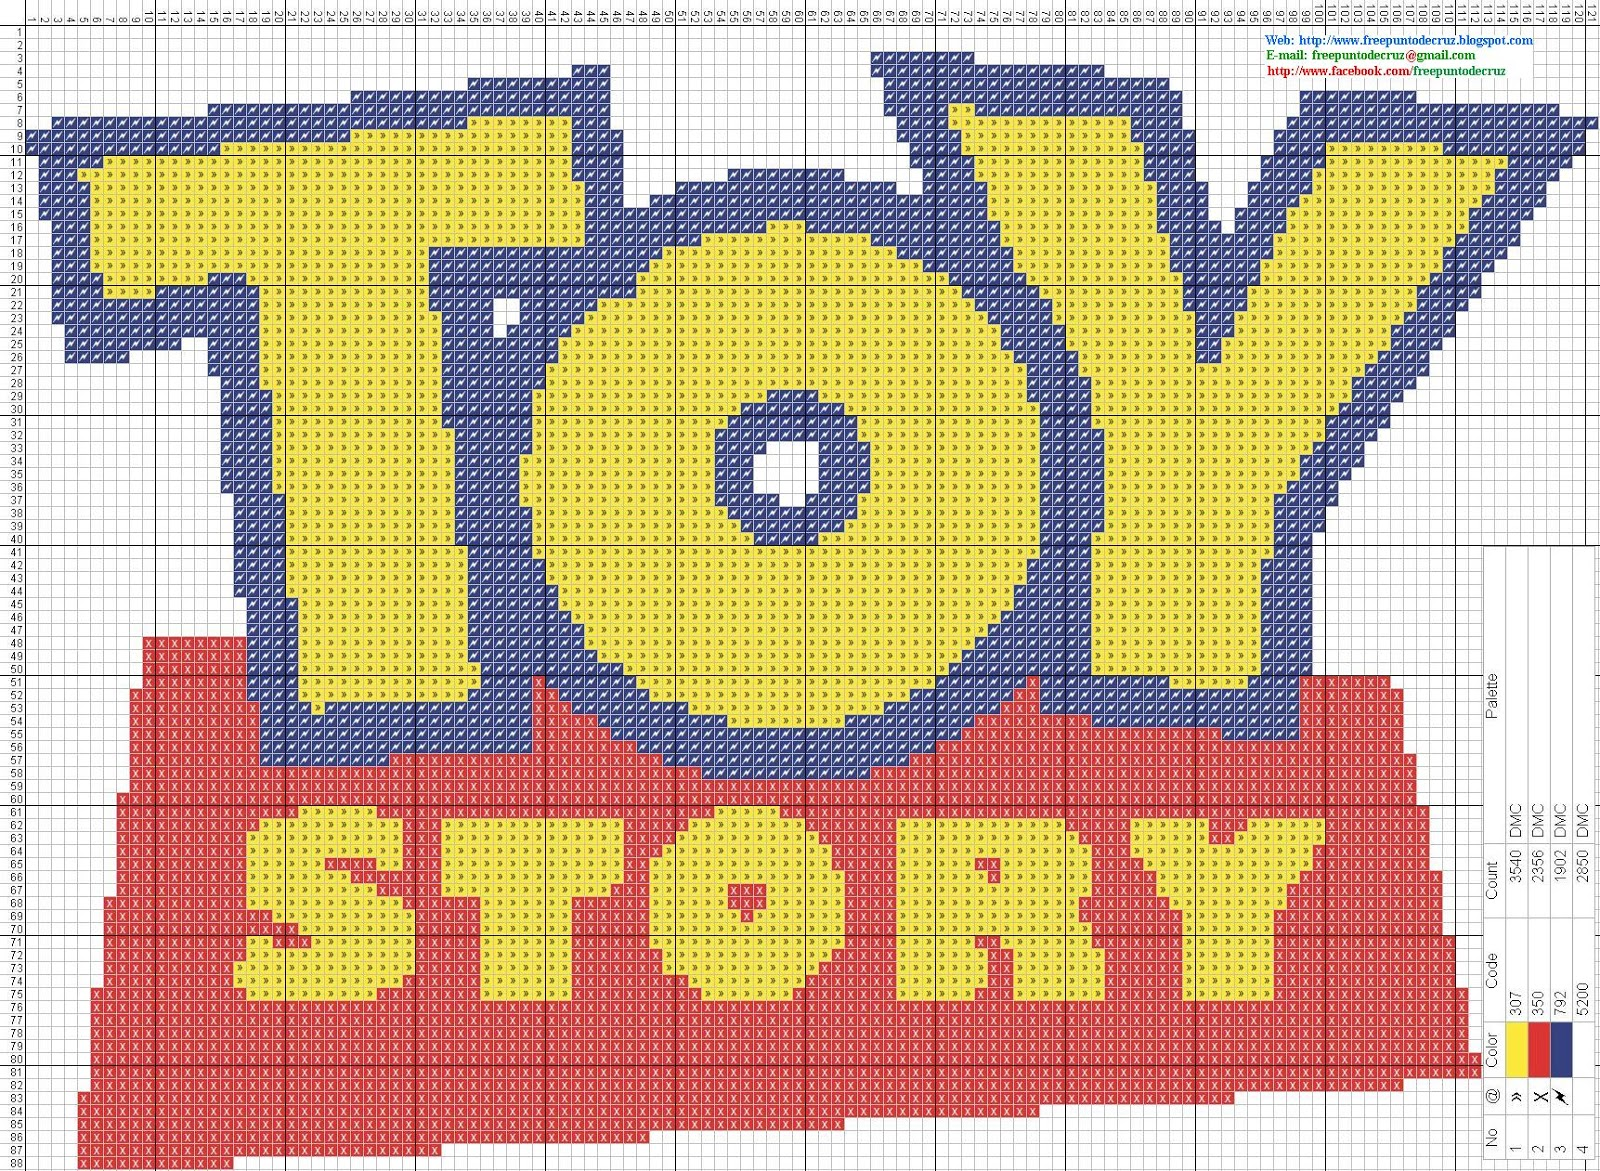 1000 images about pixel logos on